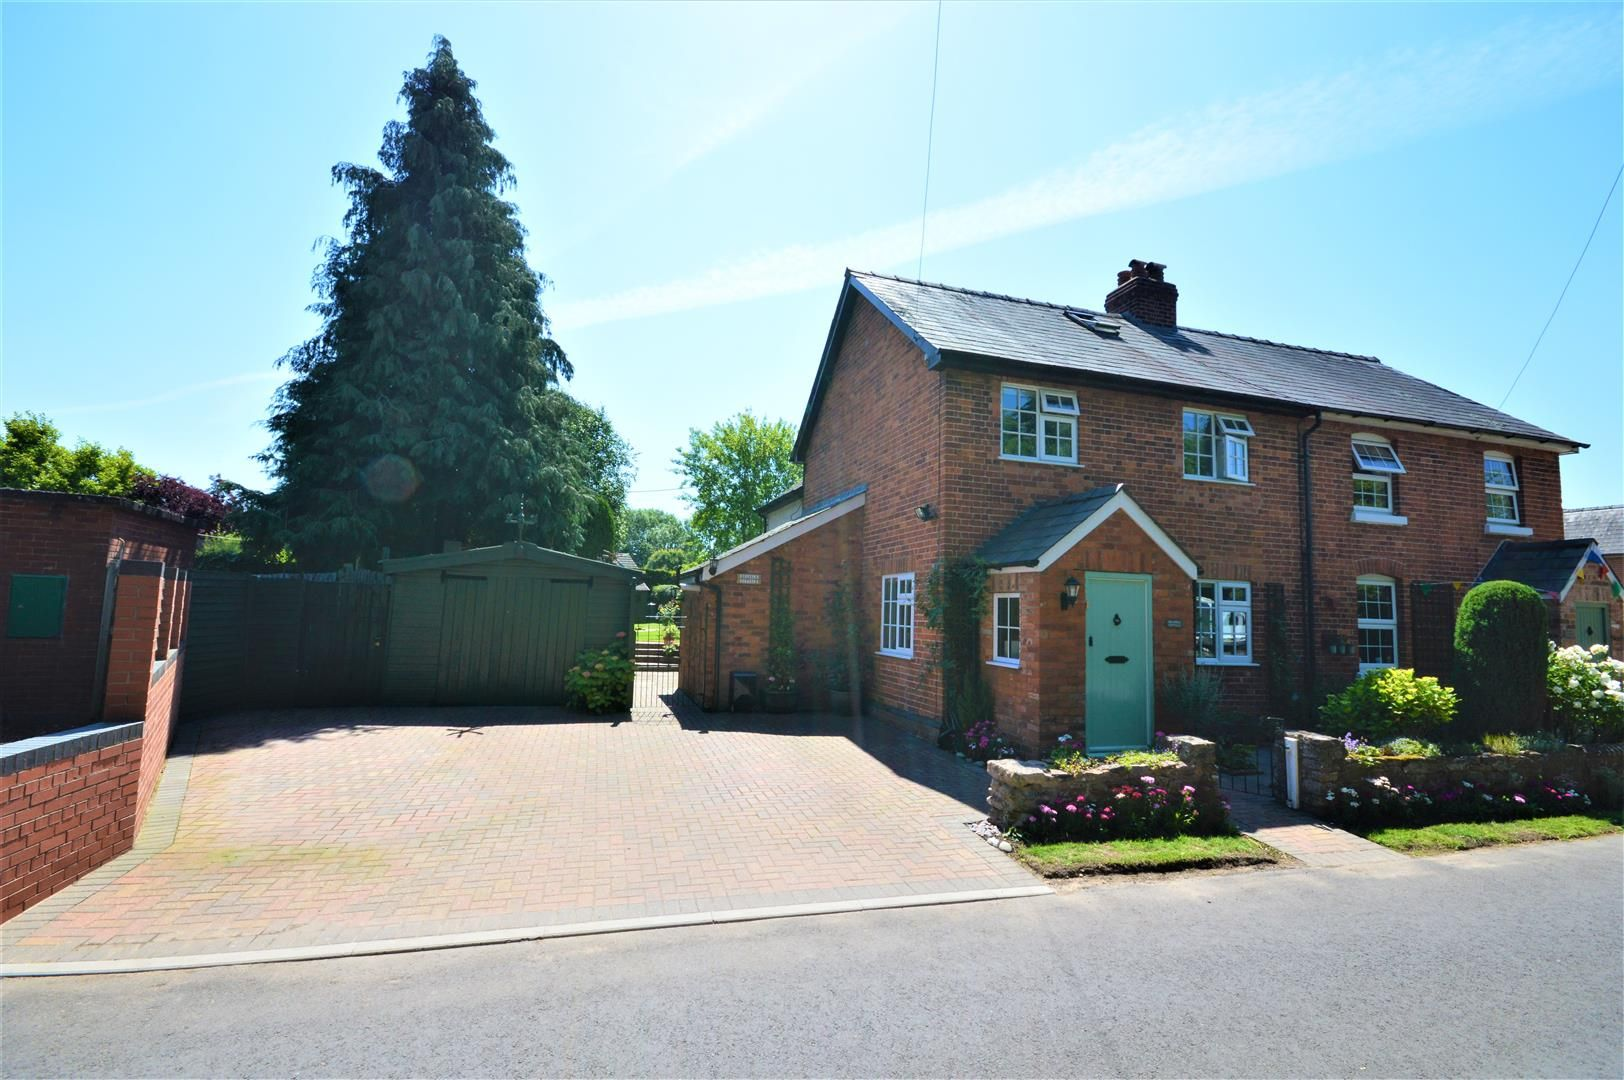 3 bed semi-detached for sale in Madley - Property Image 1